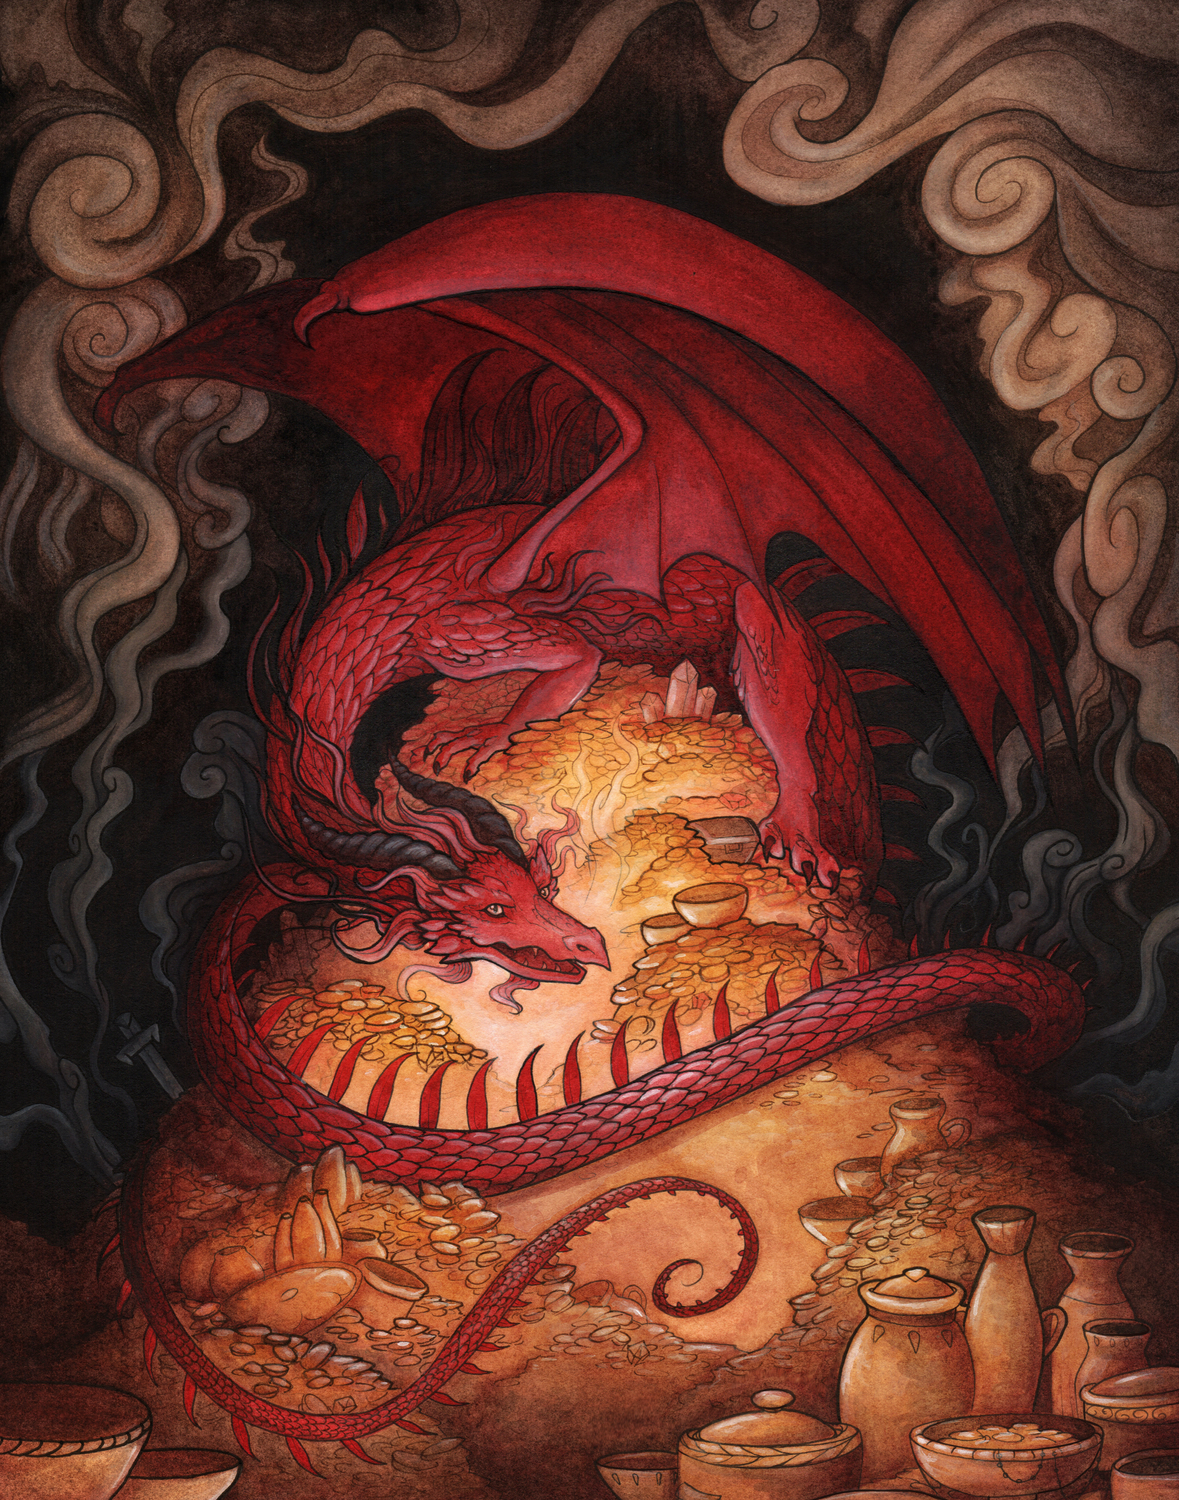 Hoarding Dragon Artwork by Madalyn McLeod